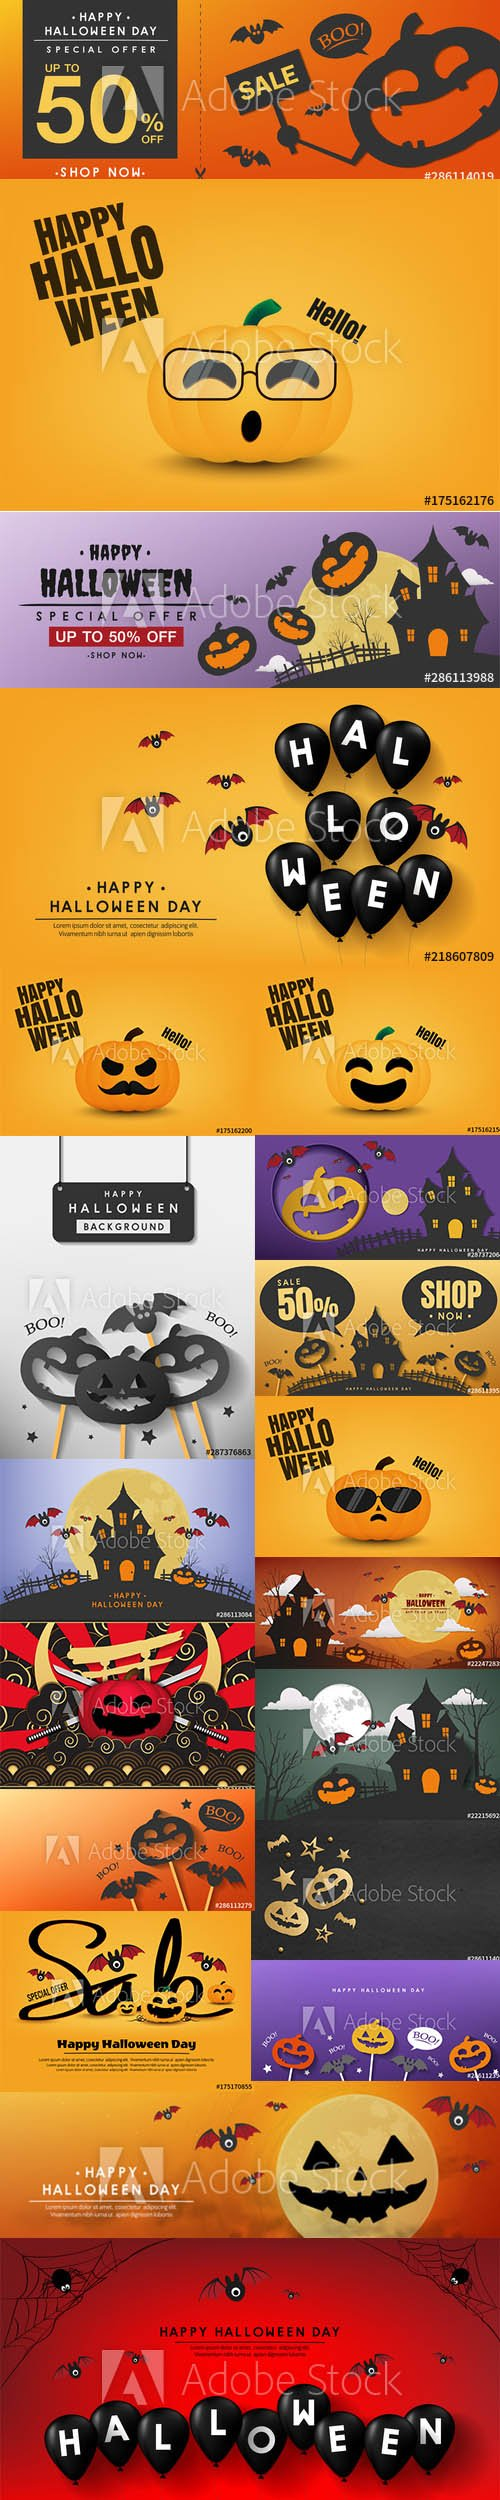 Happy Halloween Illustrations and Sale Poster